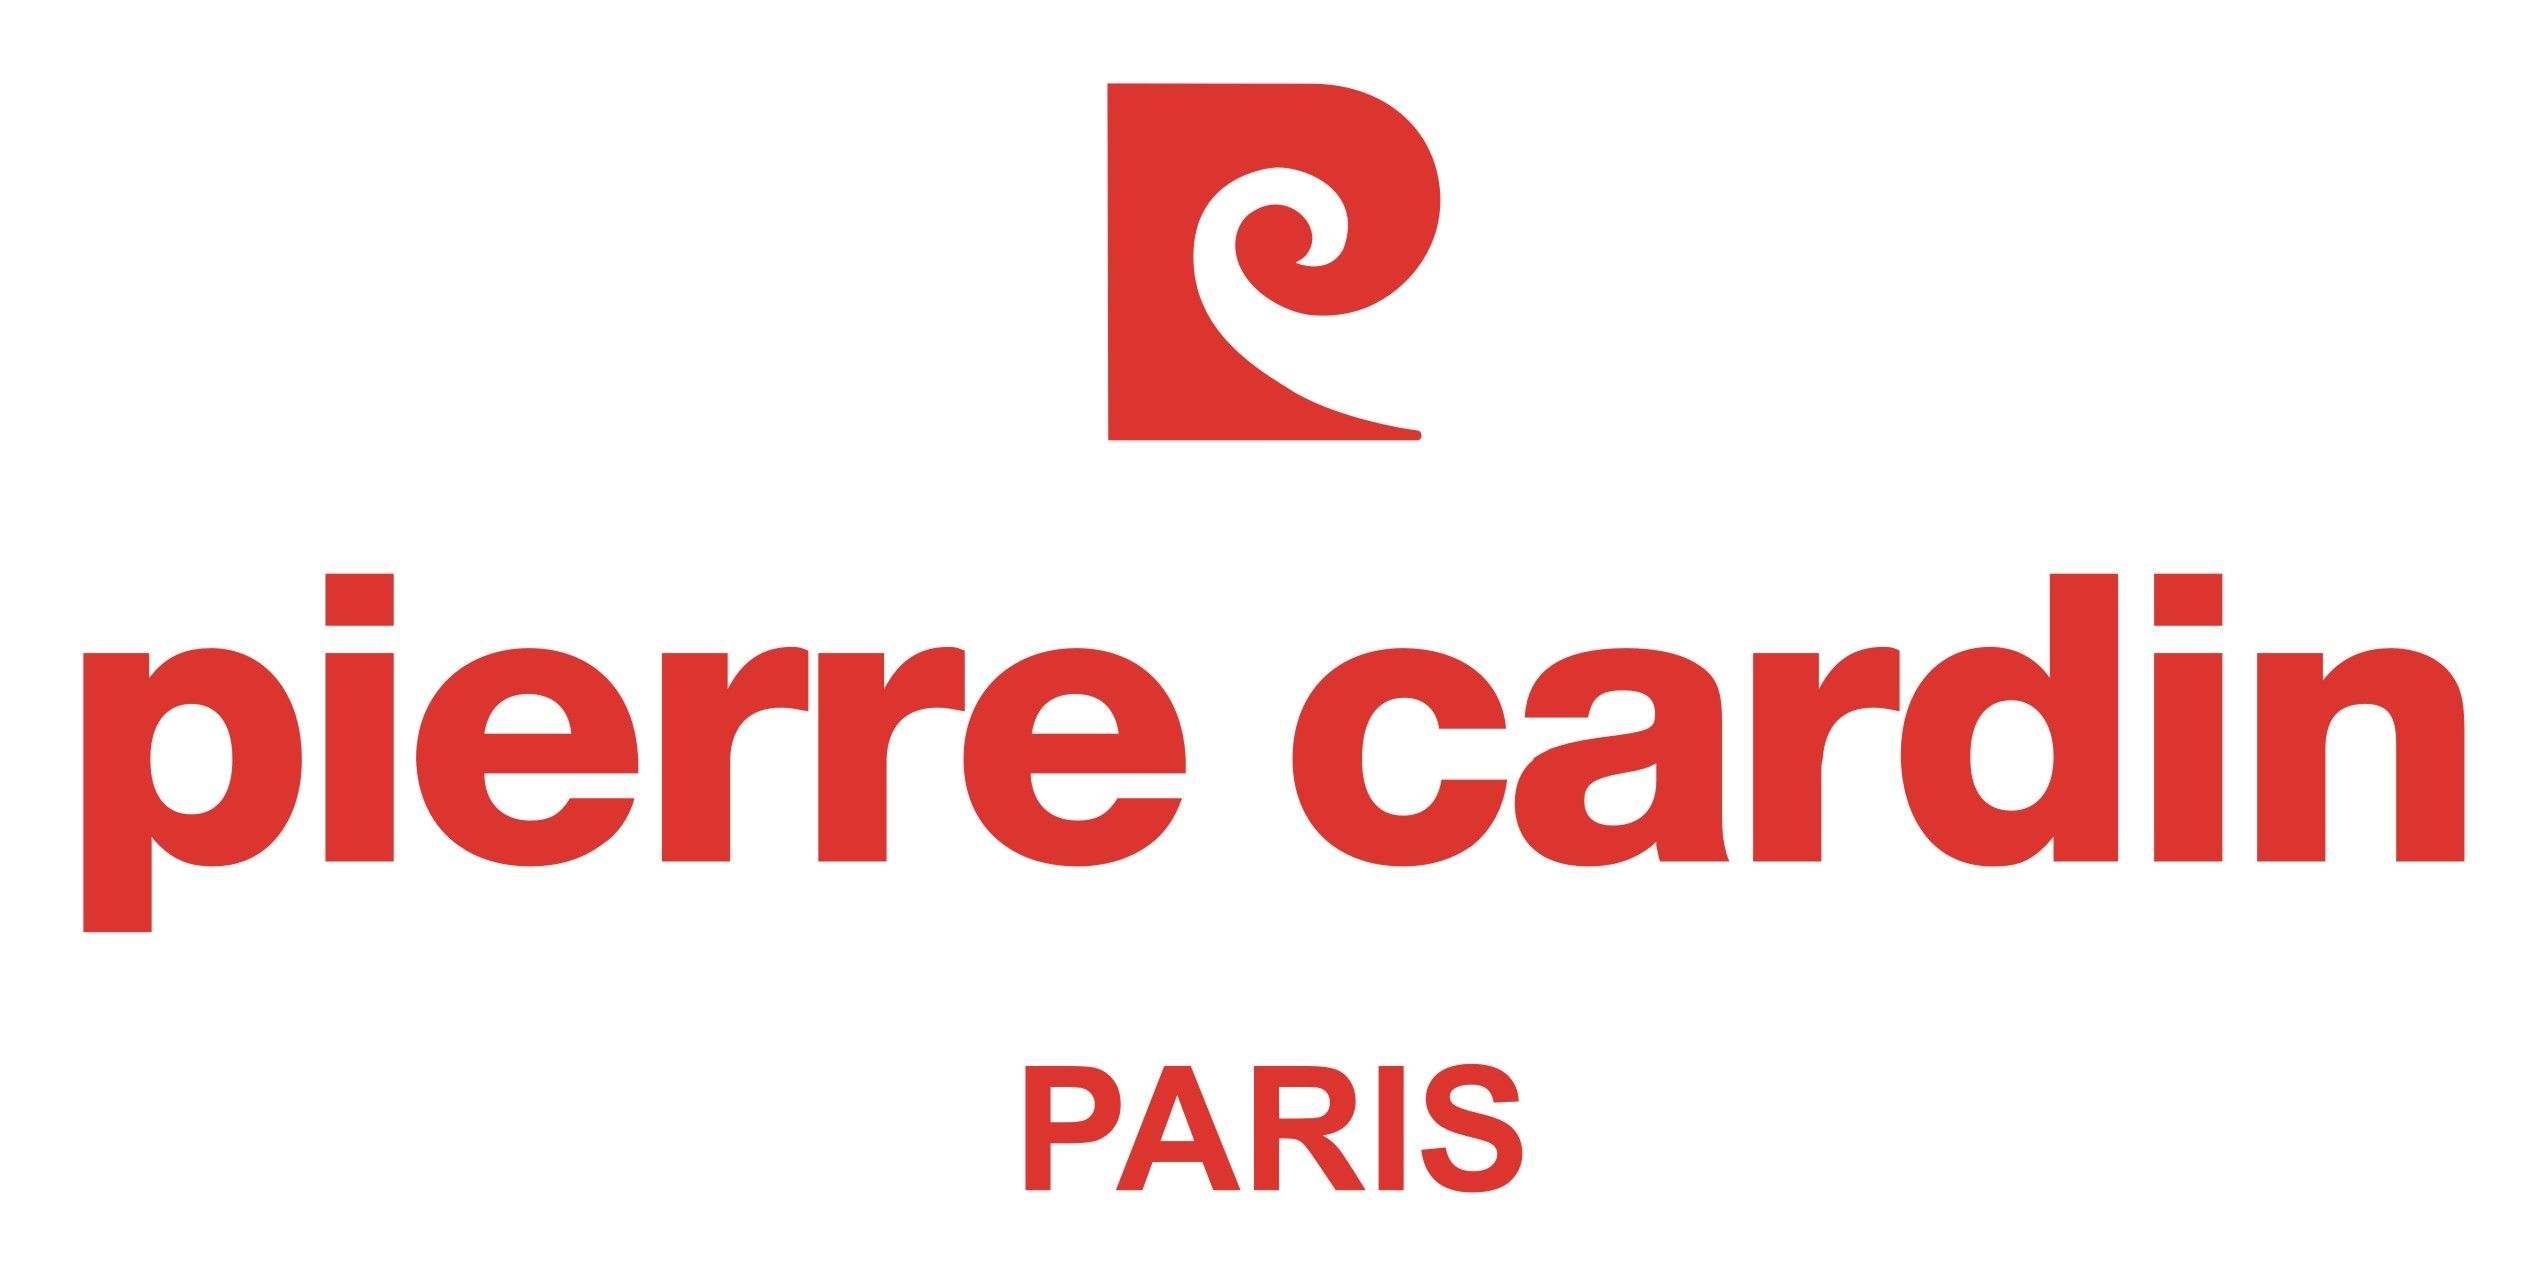 Image result for pierre cardin logo.